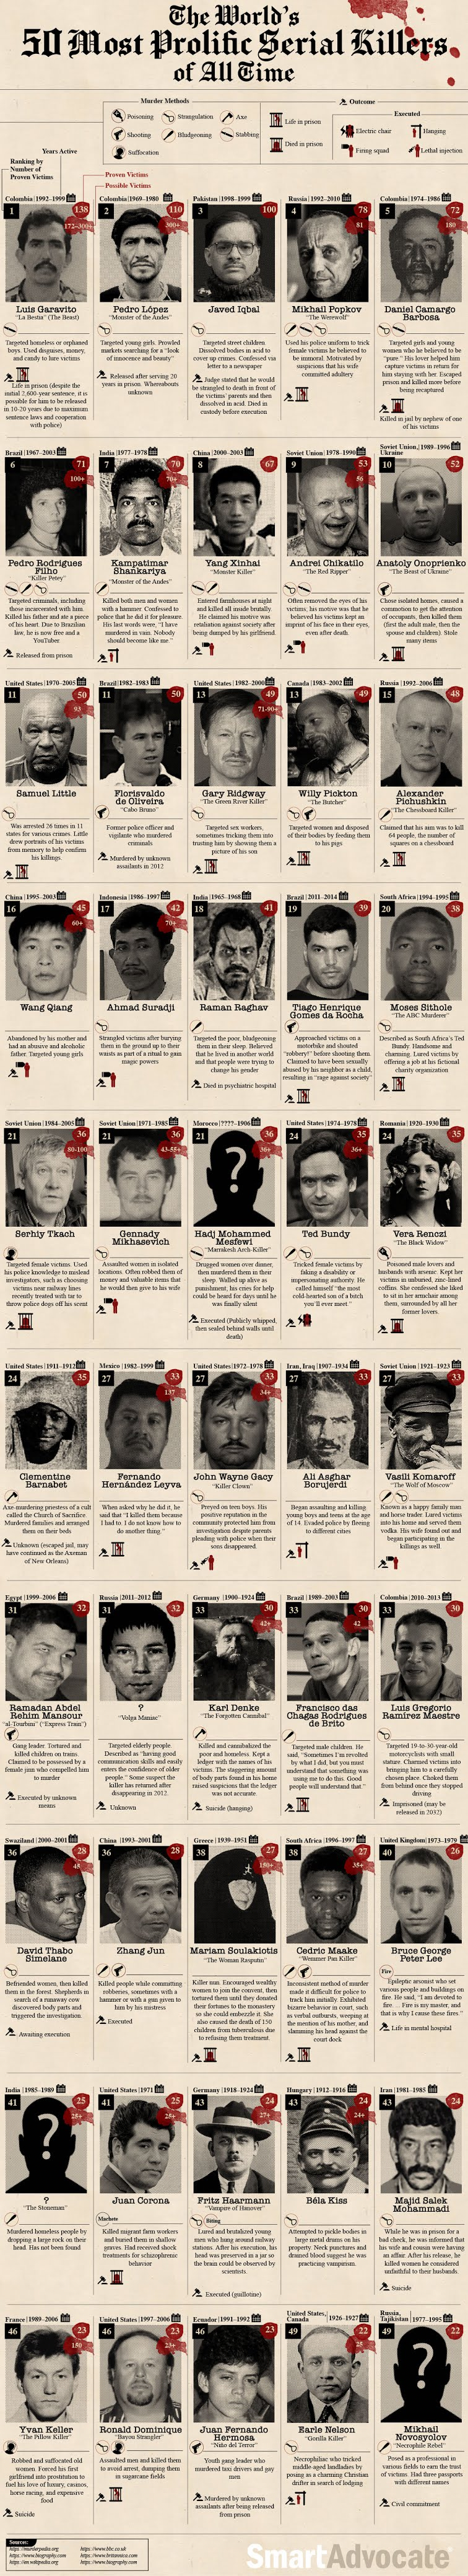 The World's 50 Most Prolific Serial Killers of All Time #Infographic